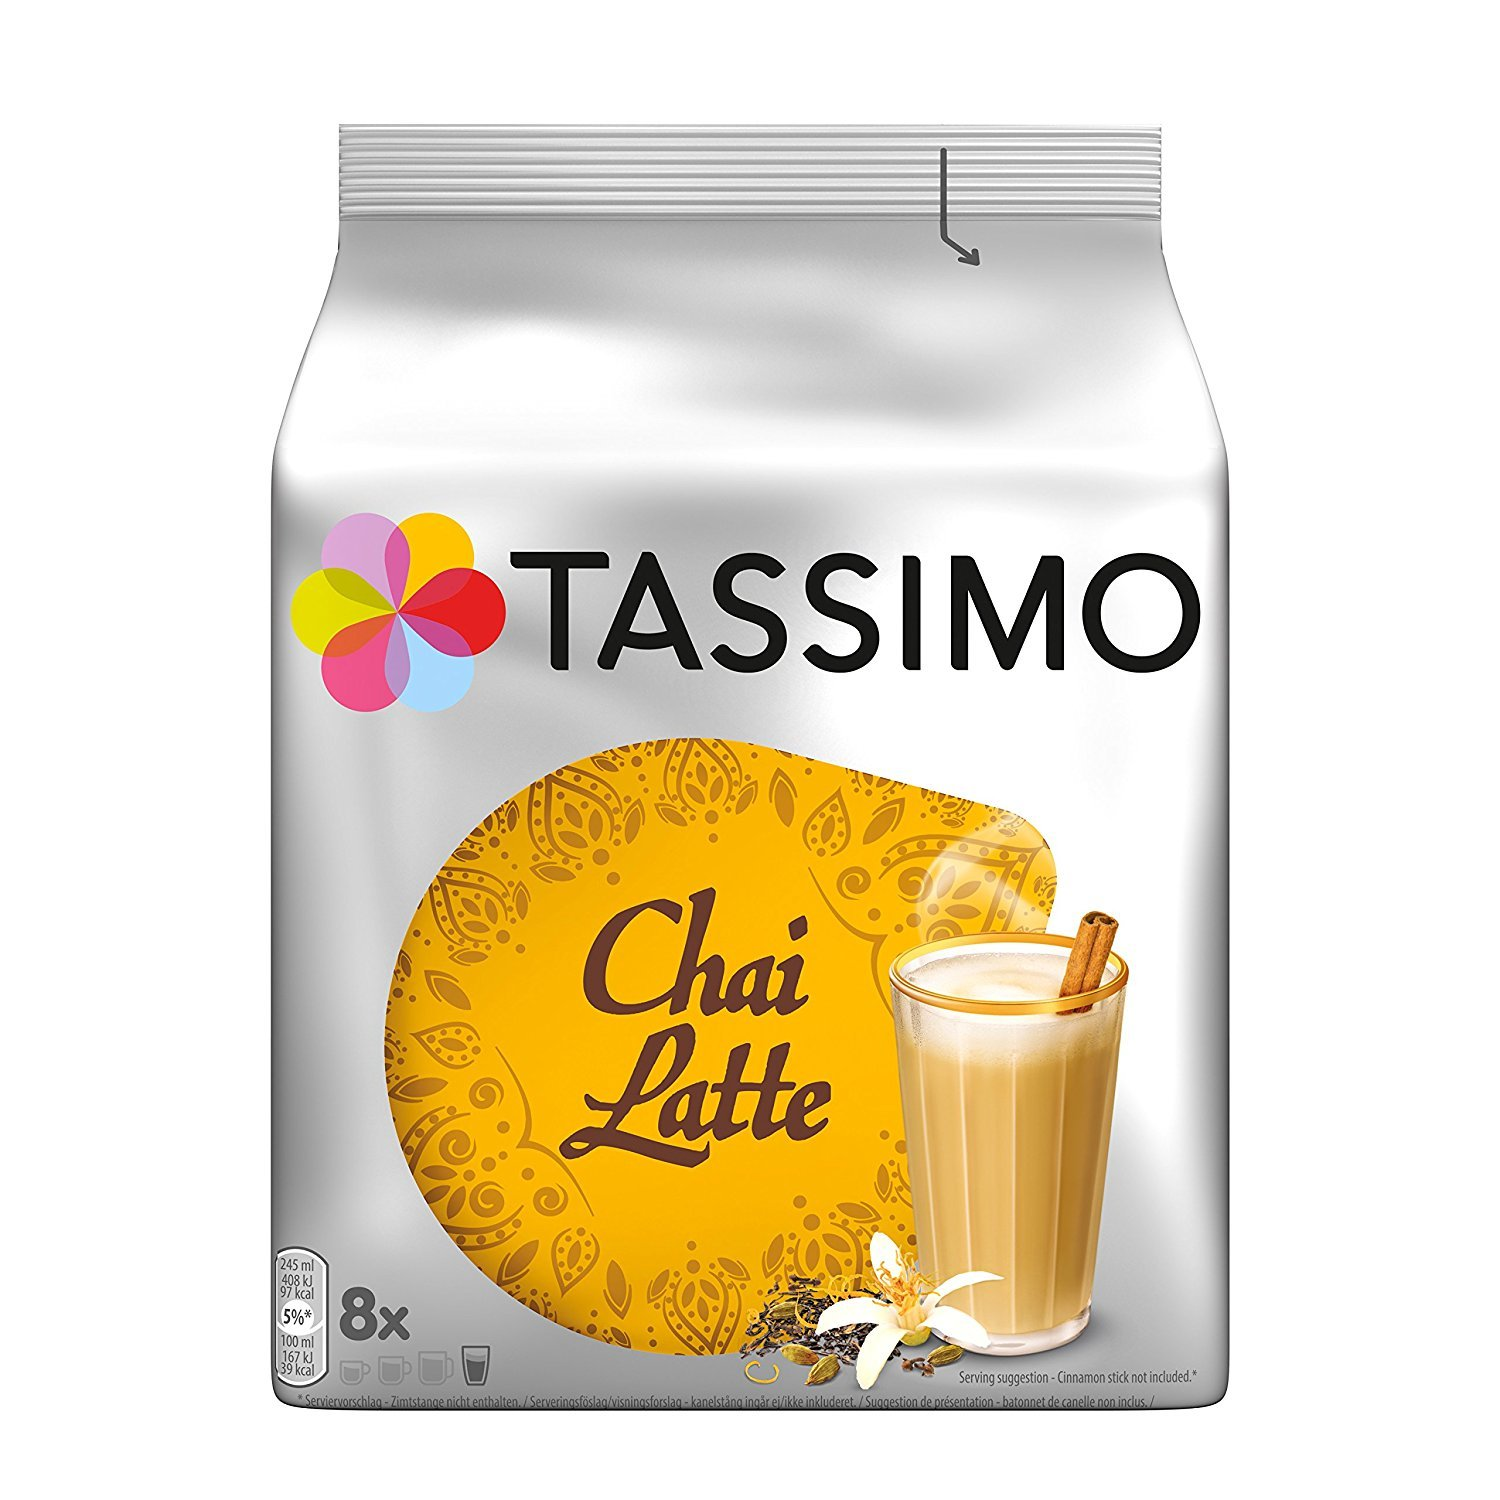 Tassimo Chai Tea Latte, 8-Count T-Discs for Tassimo Brewers, 6.35 oz (Pack of 3)